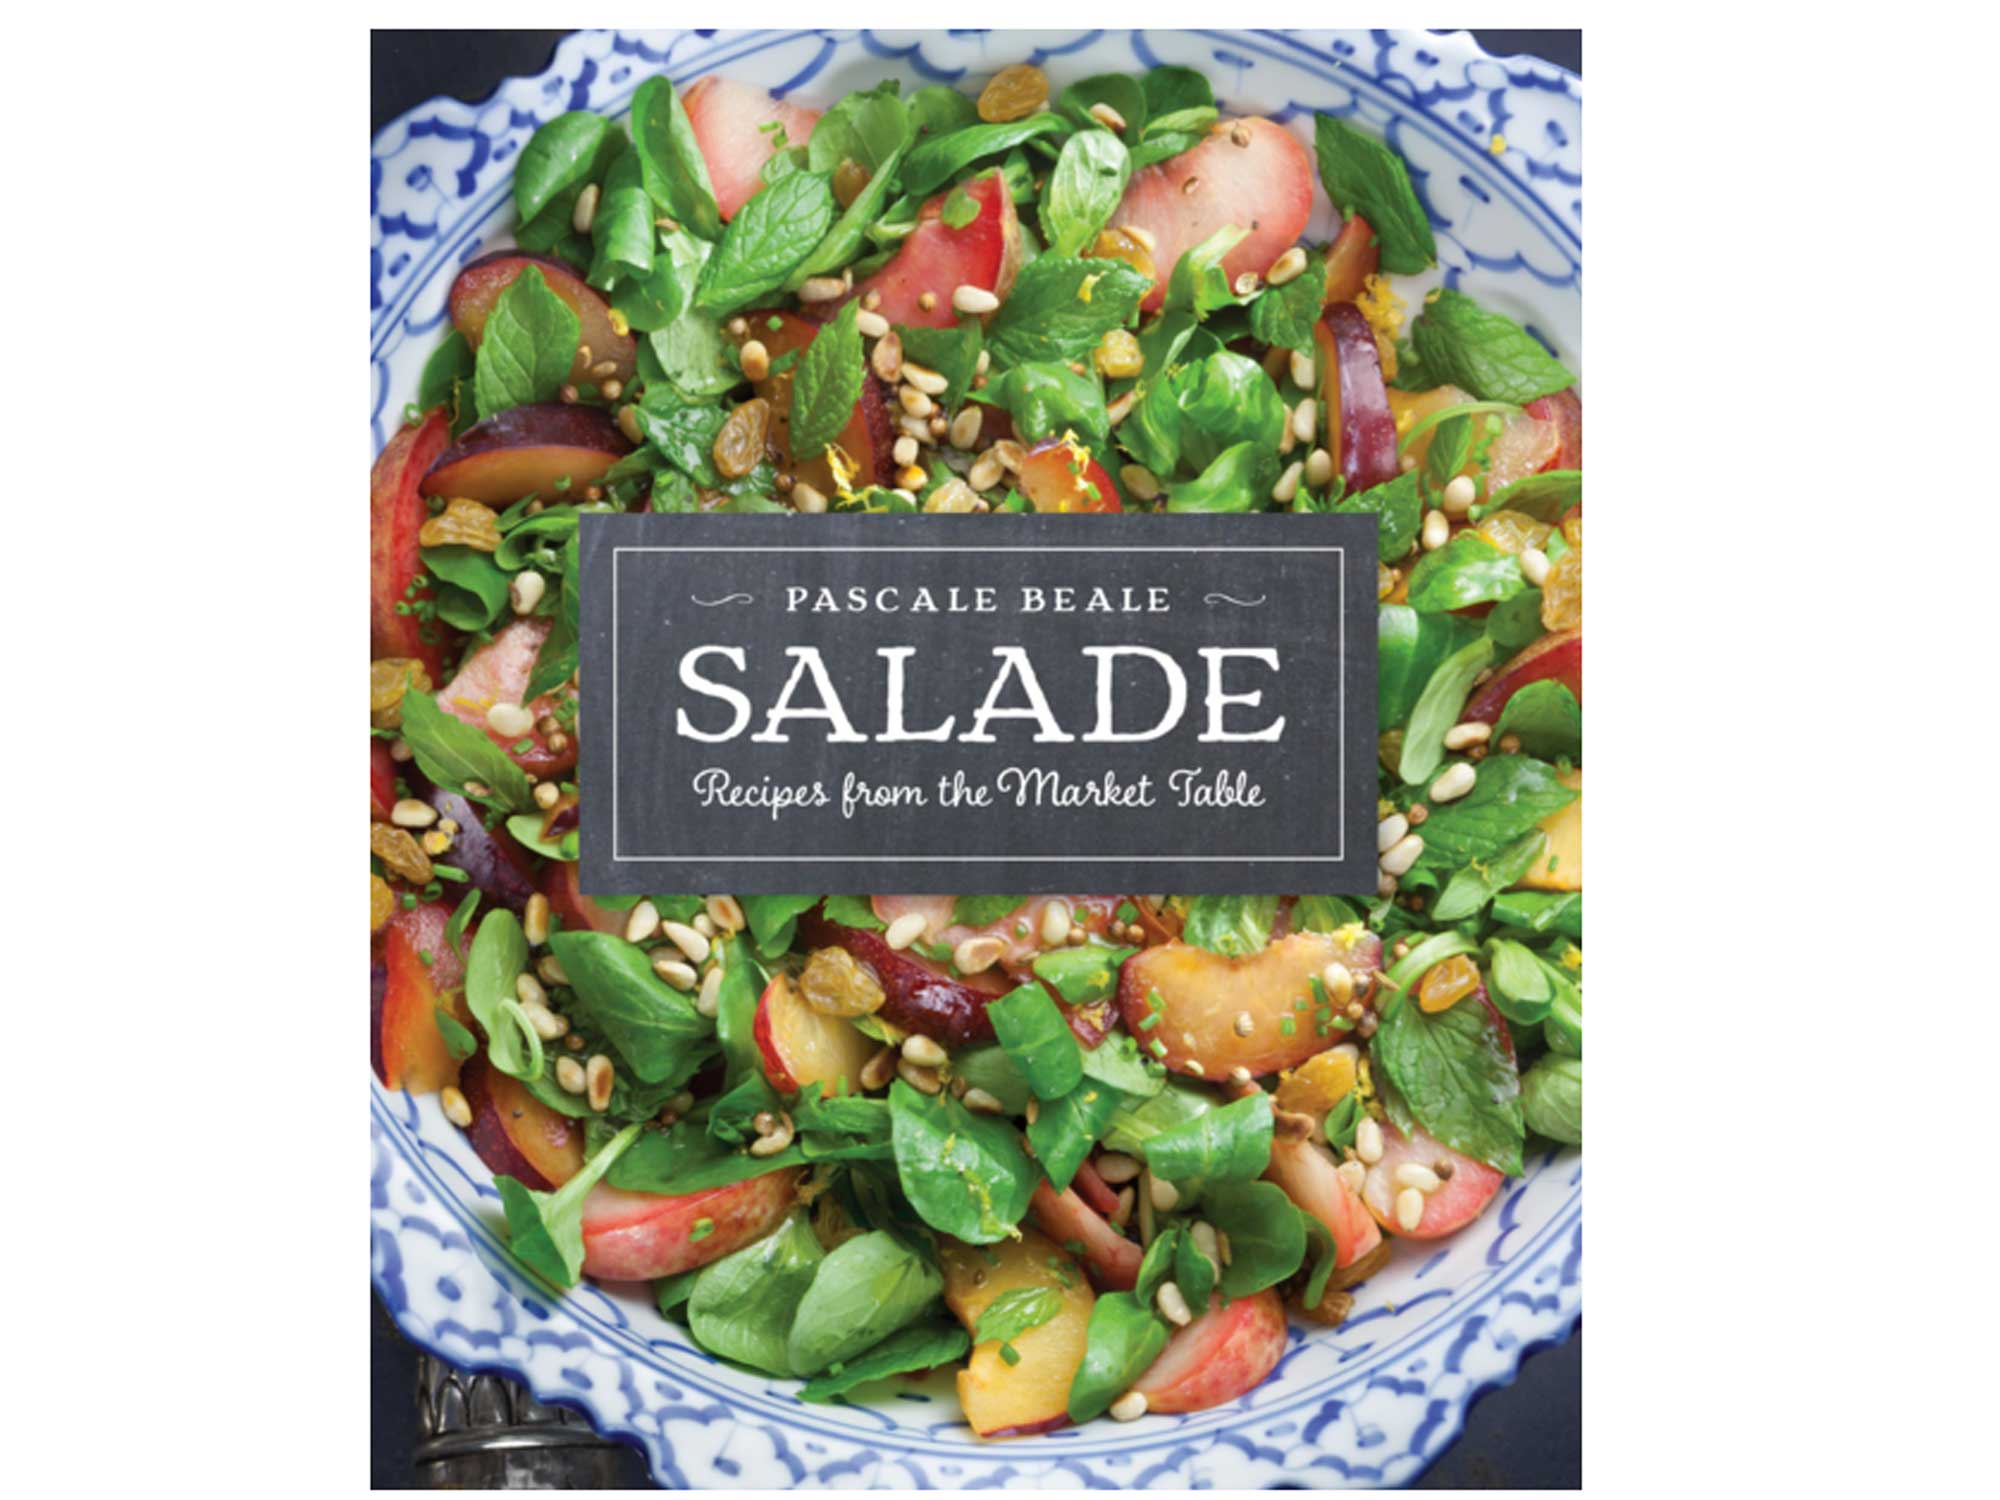 Salade: Recipes from the Market Table